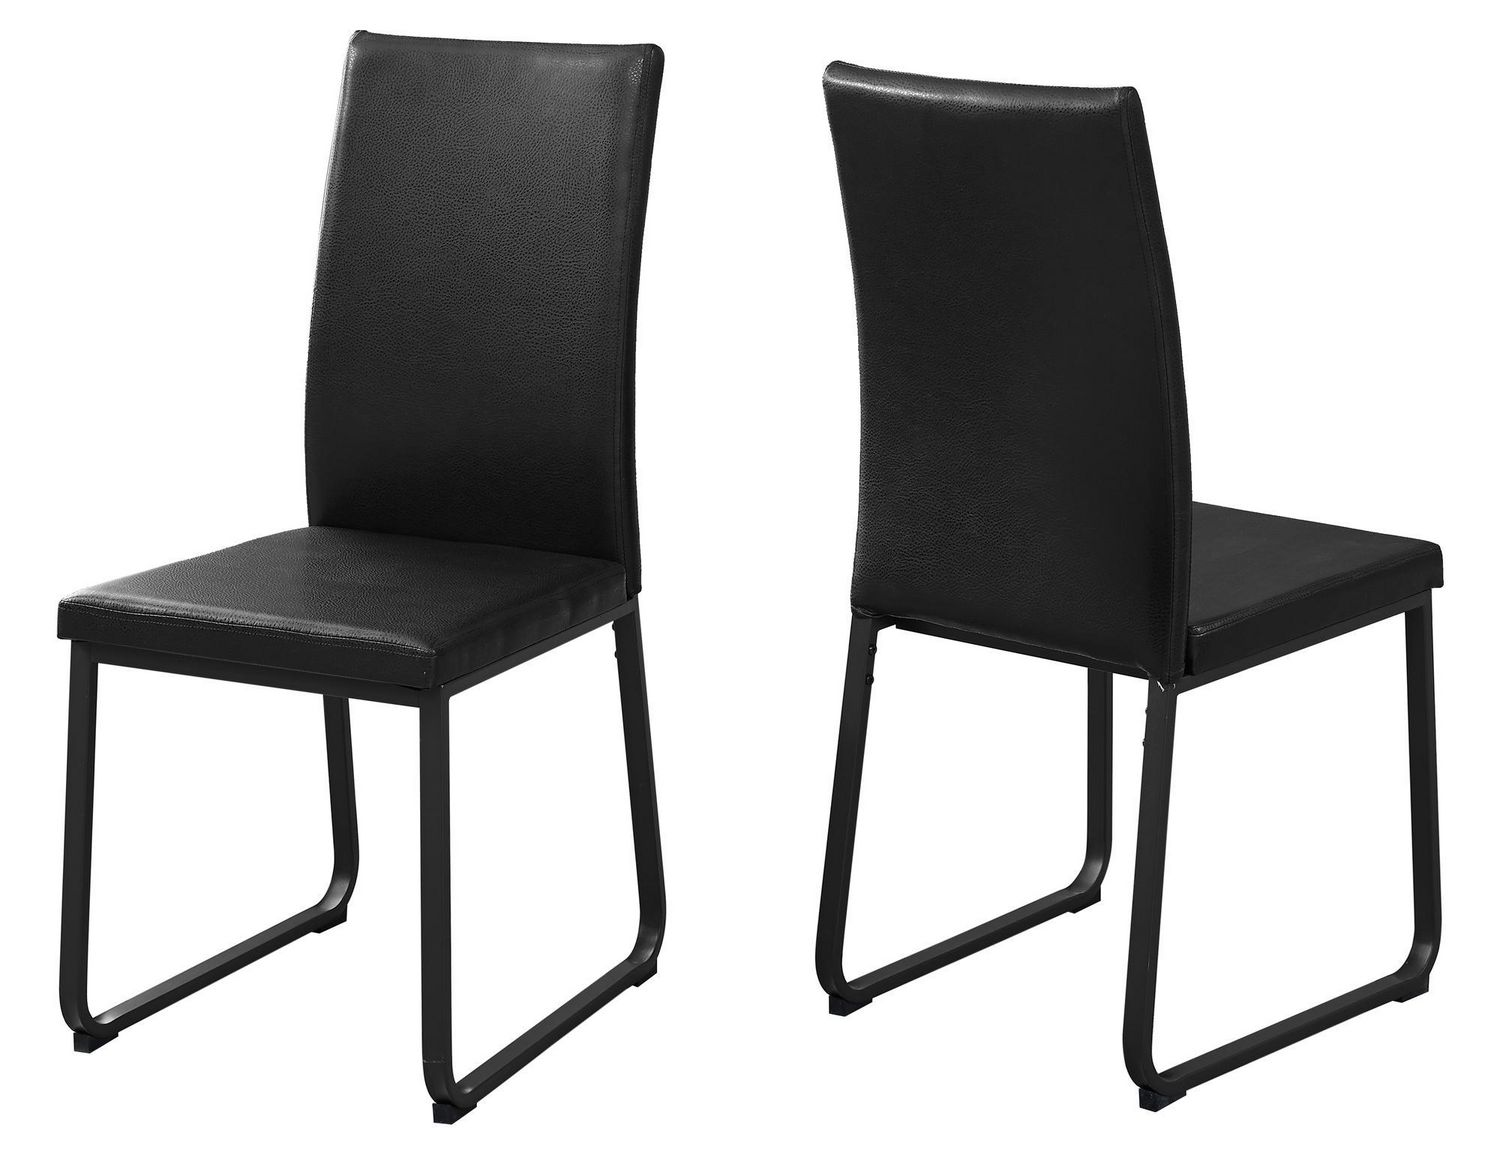 Black Leather Dining Chairs Monarch Specialties Black Leather Look Dining Chair